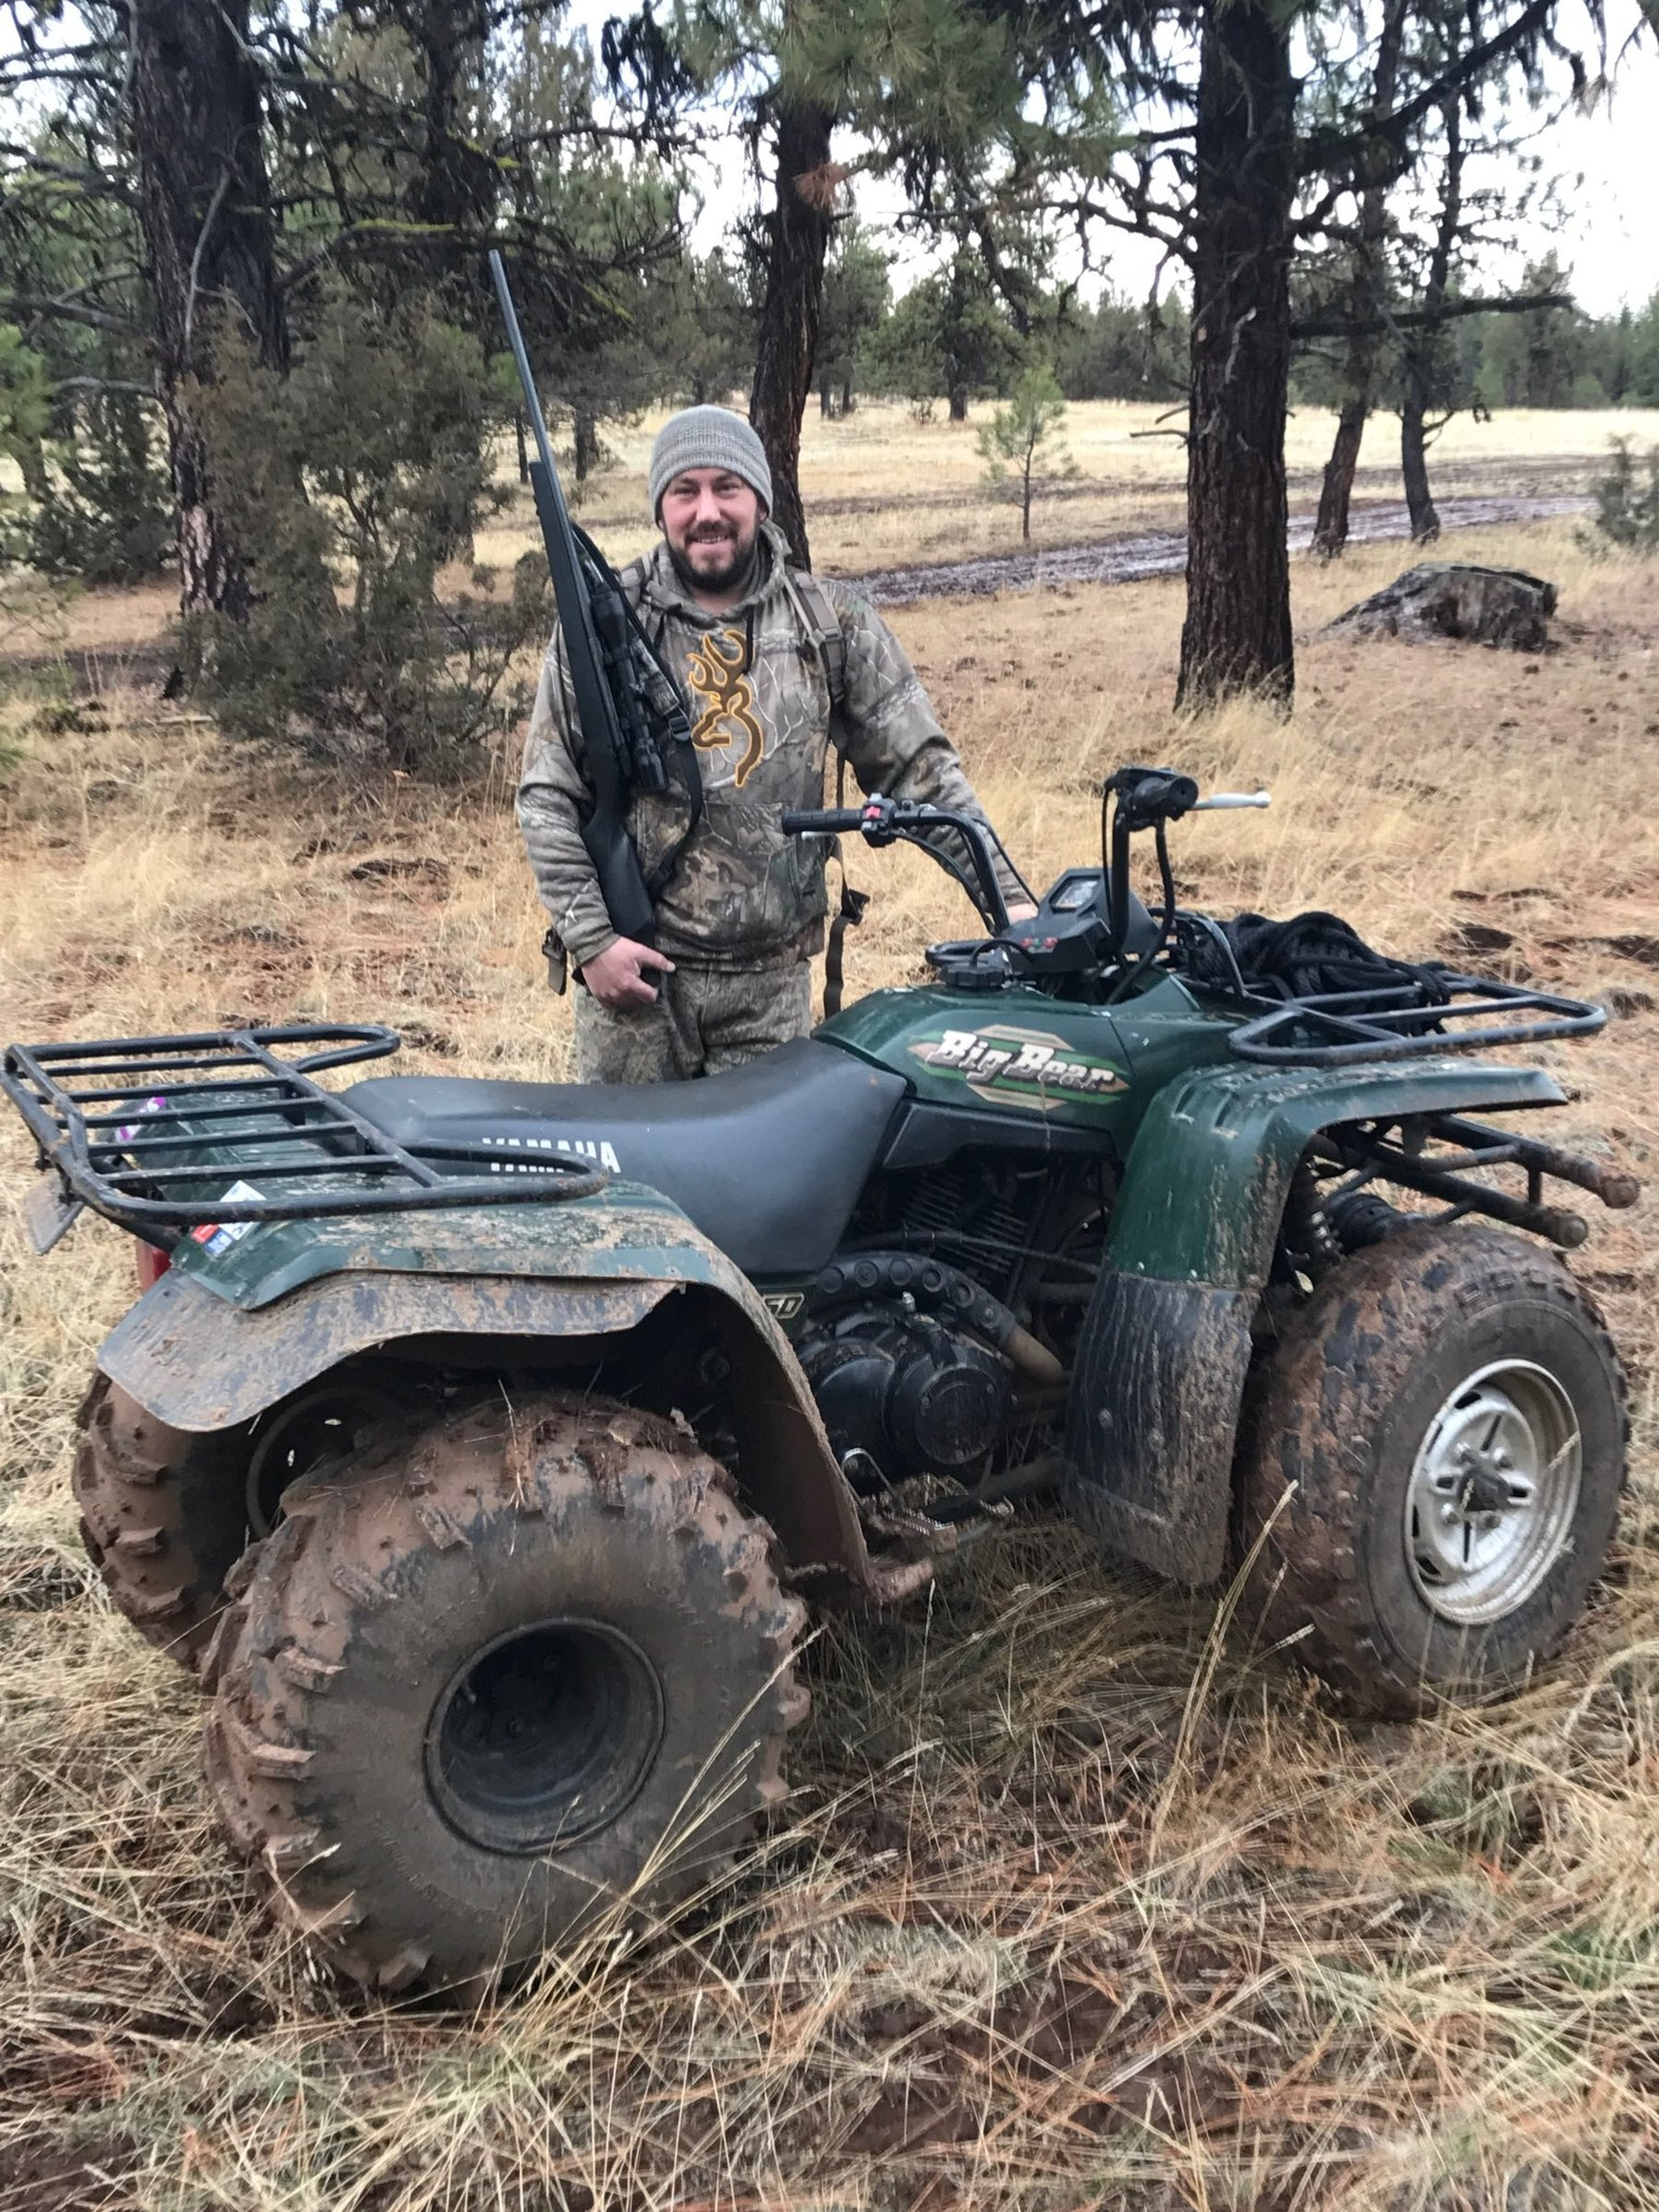 """""""The outdoors was his sanctuary,"""" Nathan Eckles said of his younger brother Ian, an avid hunter and fisherman. Ian Eckles, 41, of Kent, disappeared May 16 on a hunting trip in rural Kittitas County. A suspect was arrested and charged with second-degree murder in Eckles' death, but searchers have yet to find Eckles' body.  (Courtesy of / the Eckles family)"""